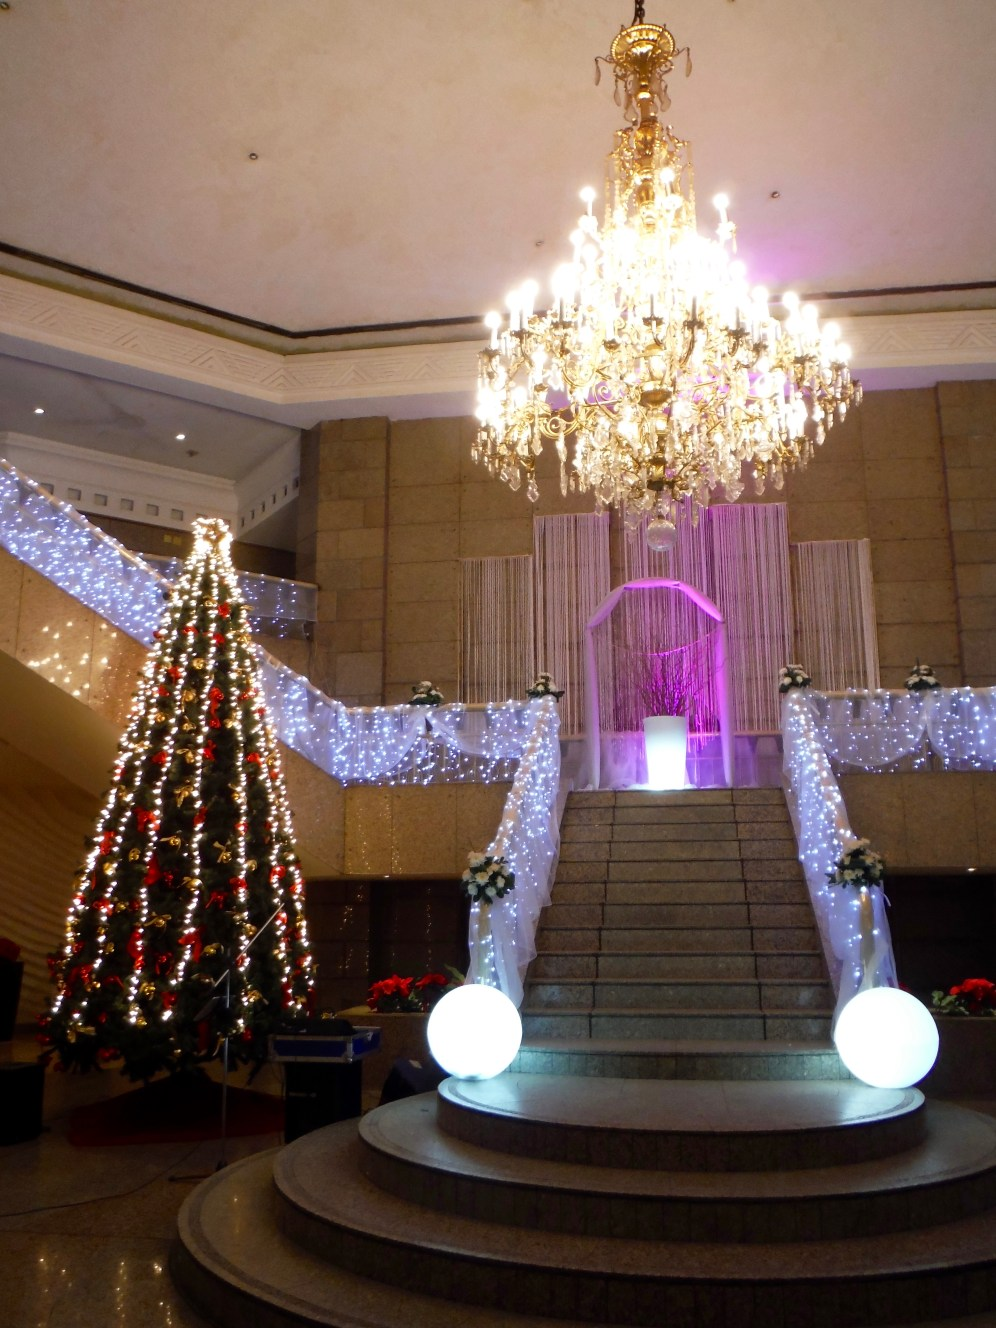 The lobby - decorated for a wedding!!!